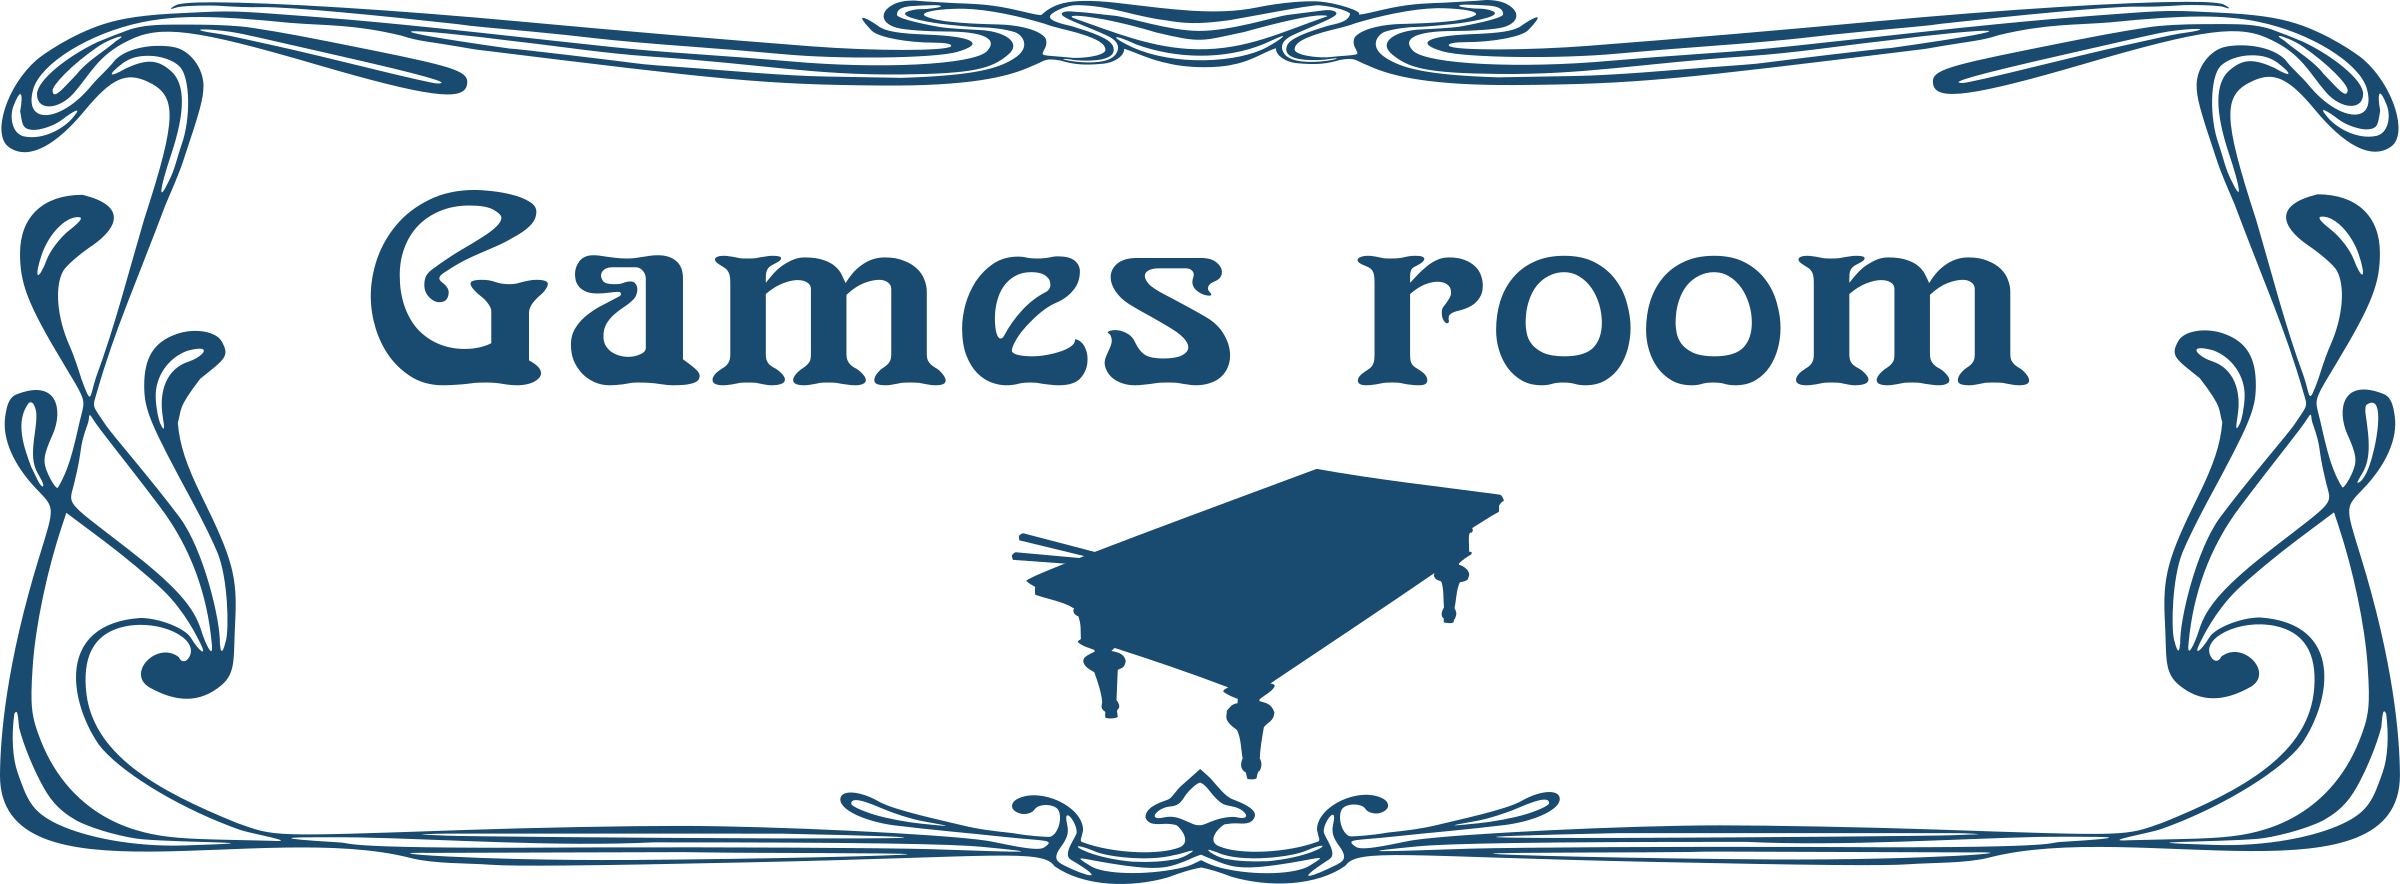 Games clipart game room. Door sign big image